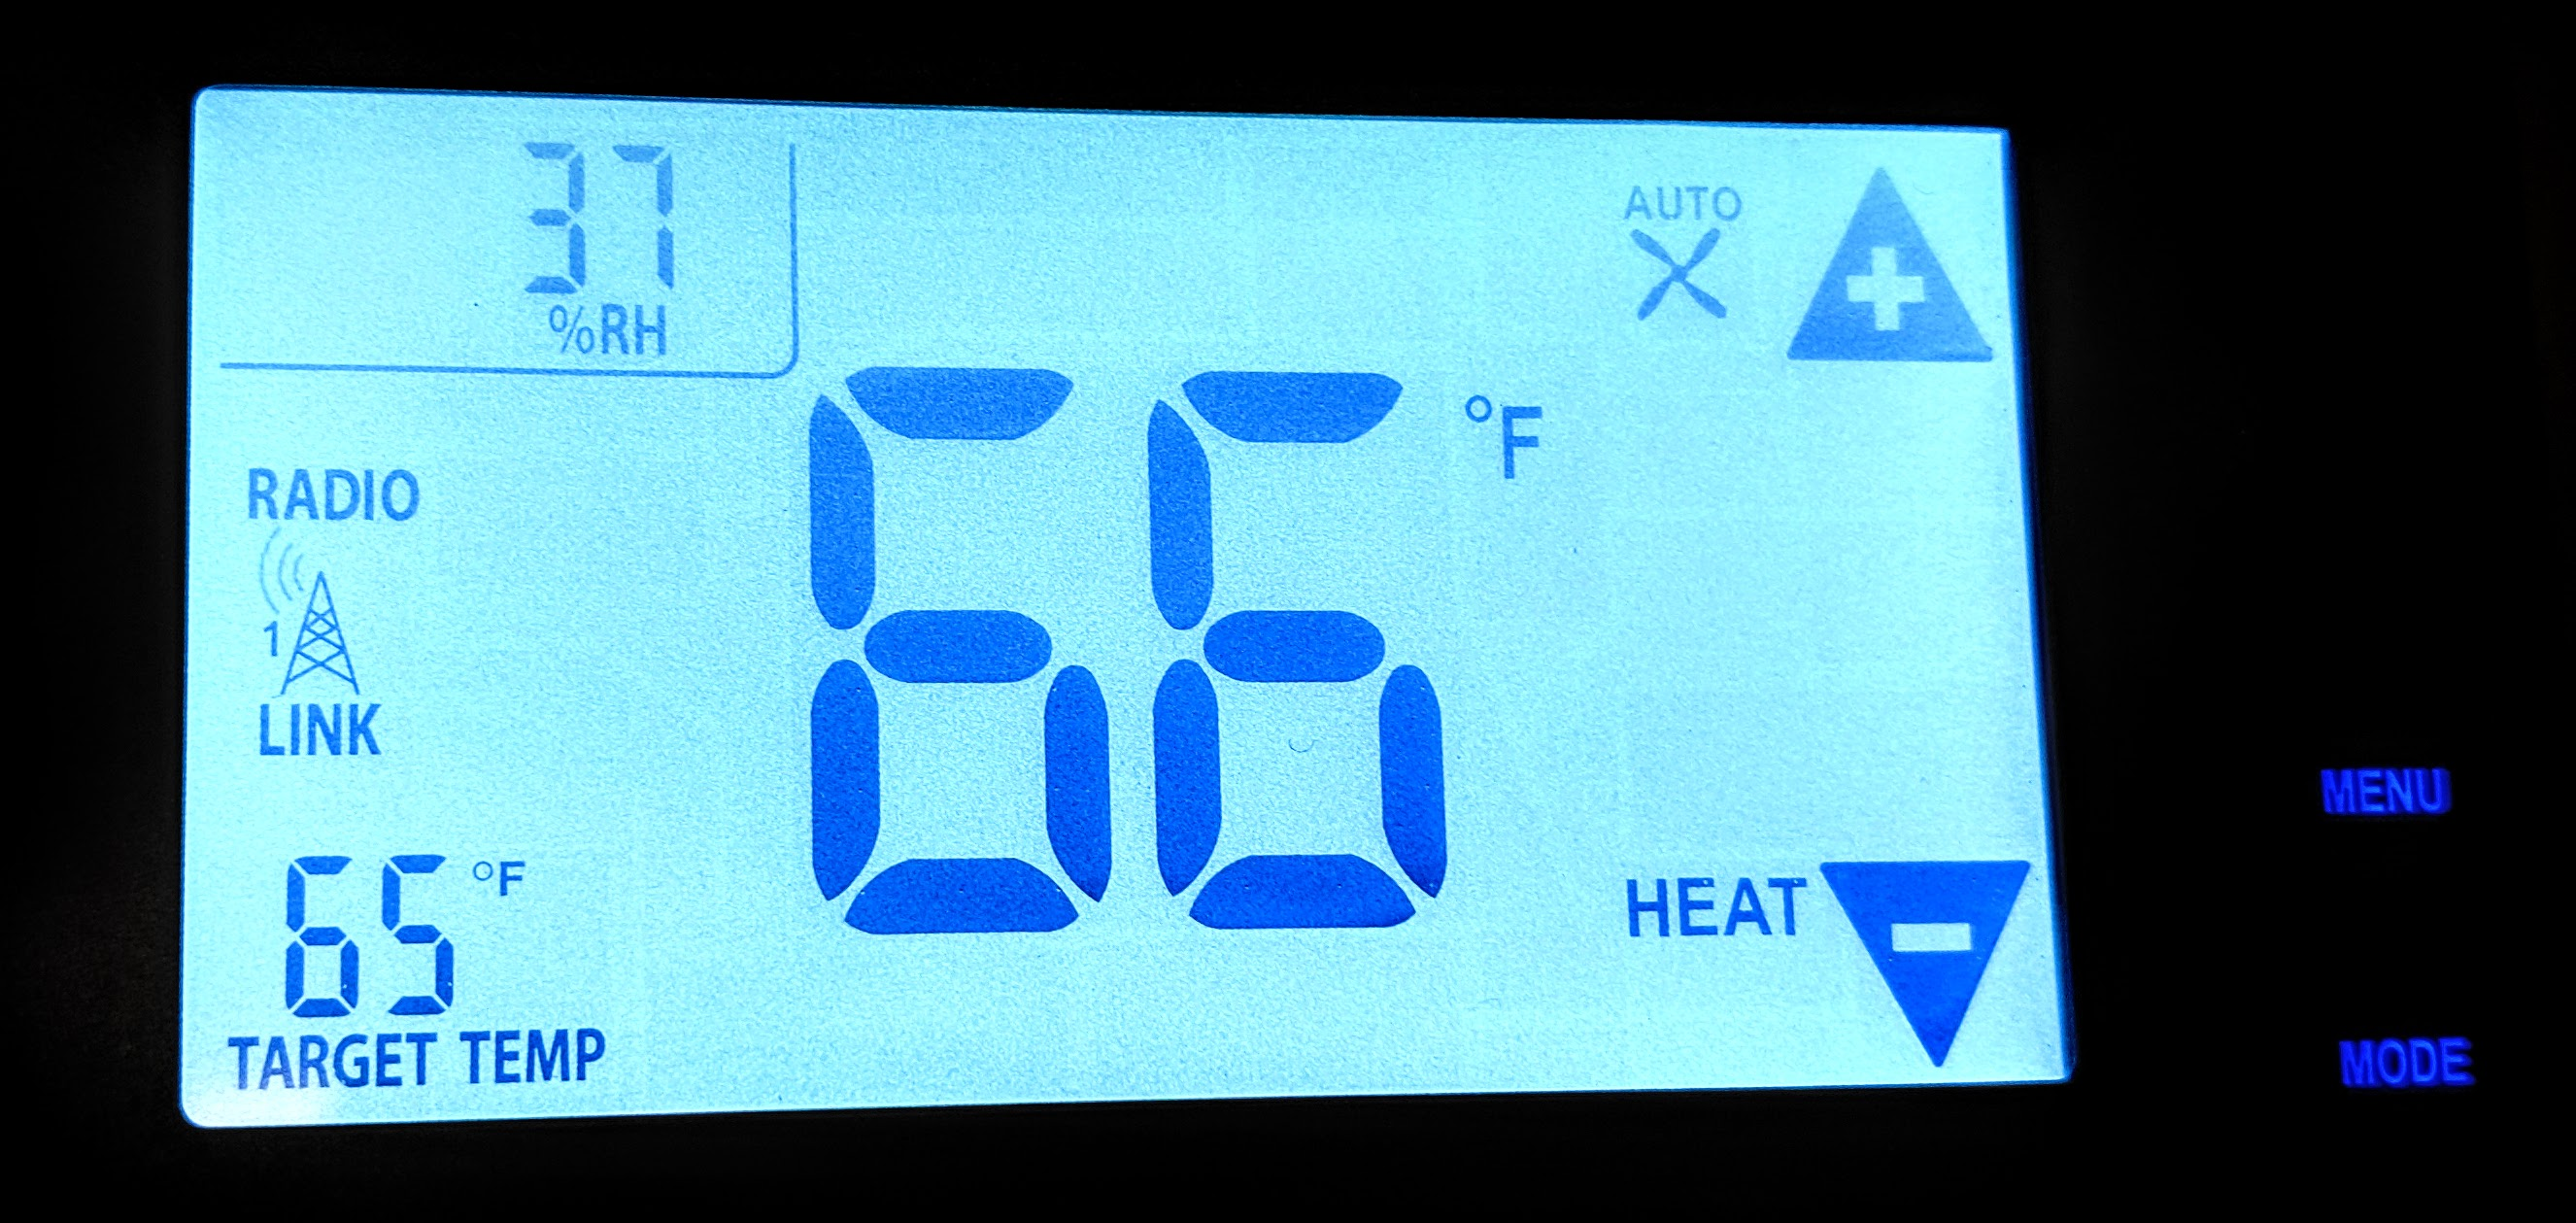 Smart Thermostat with Relative Humidity